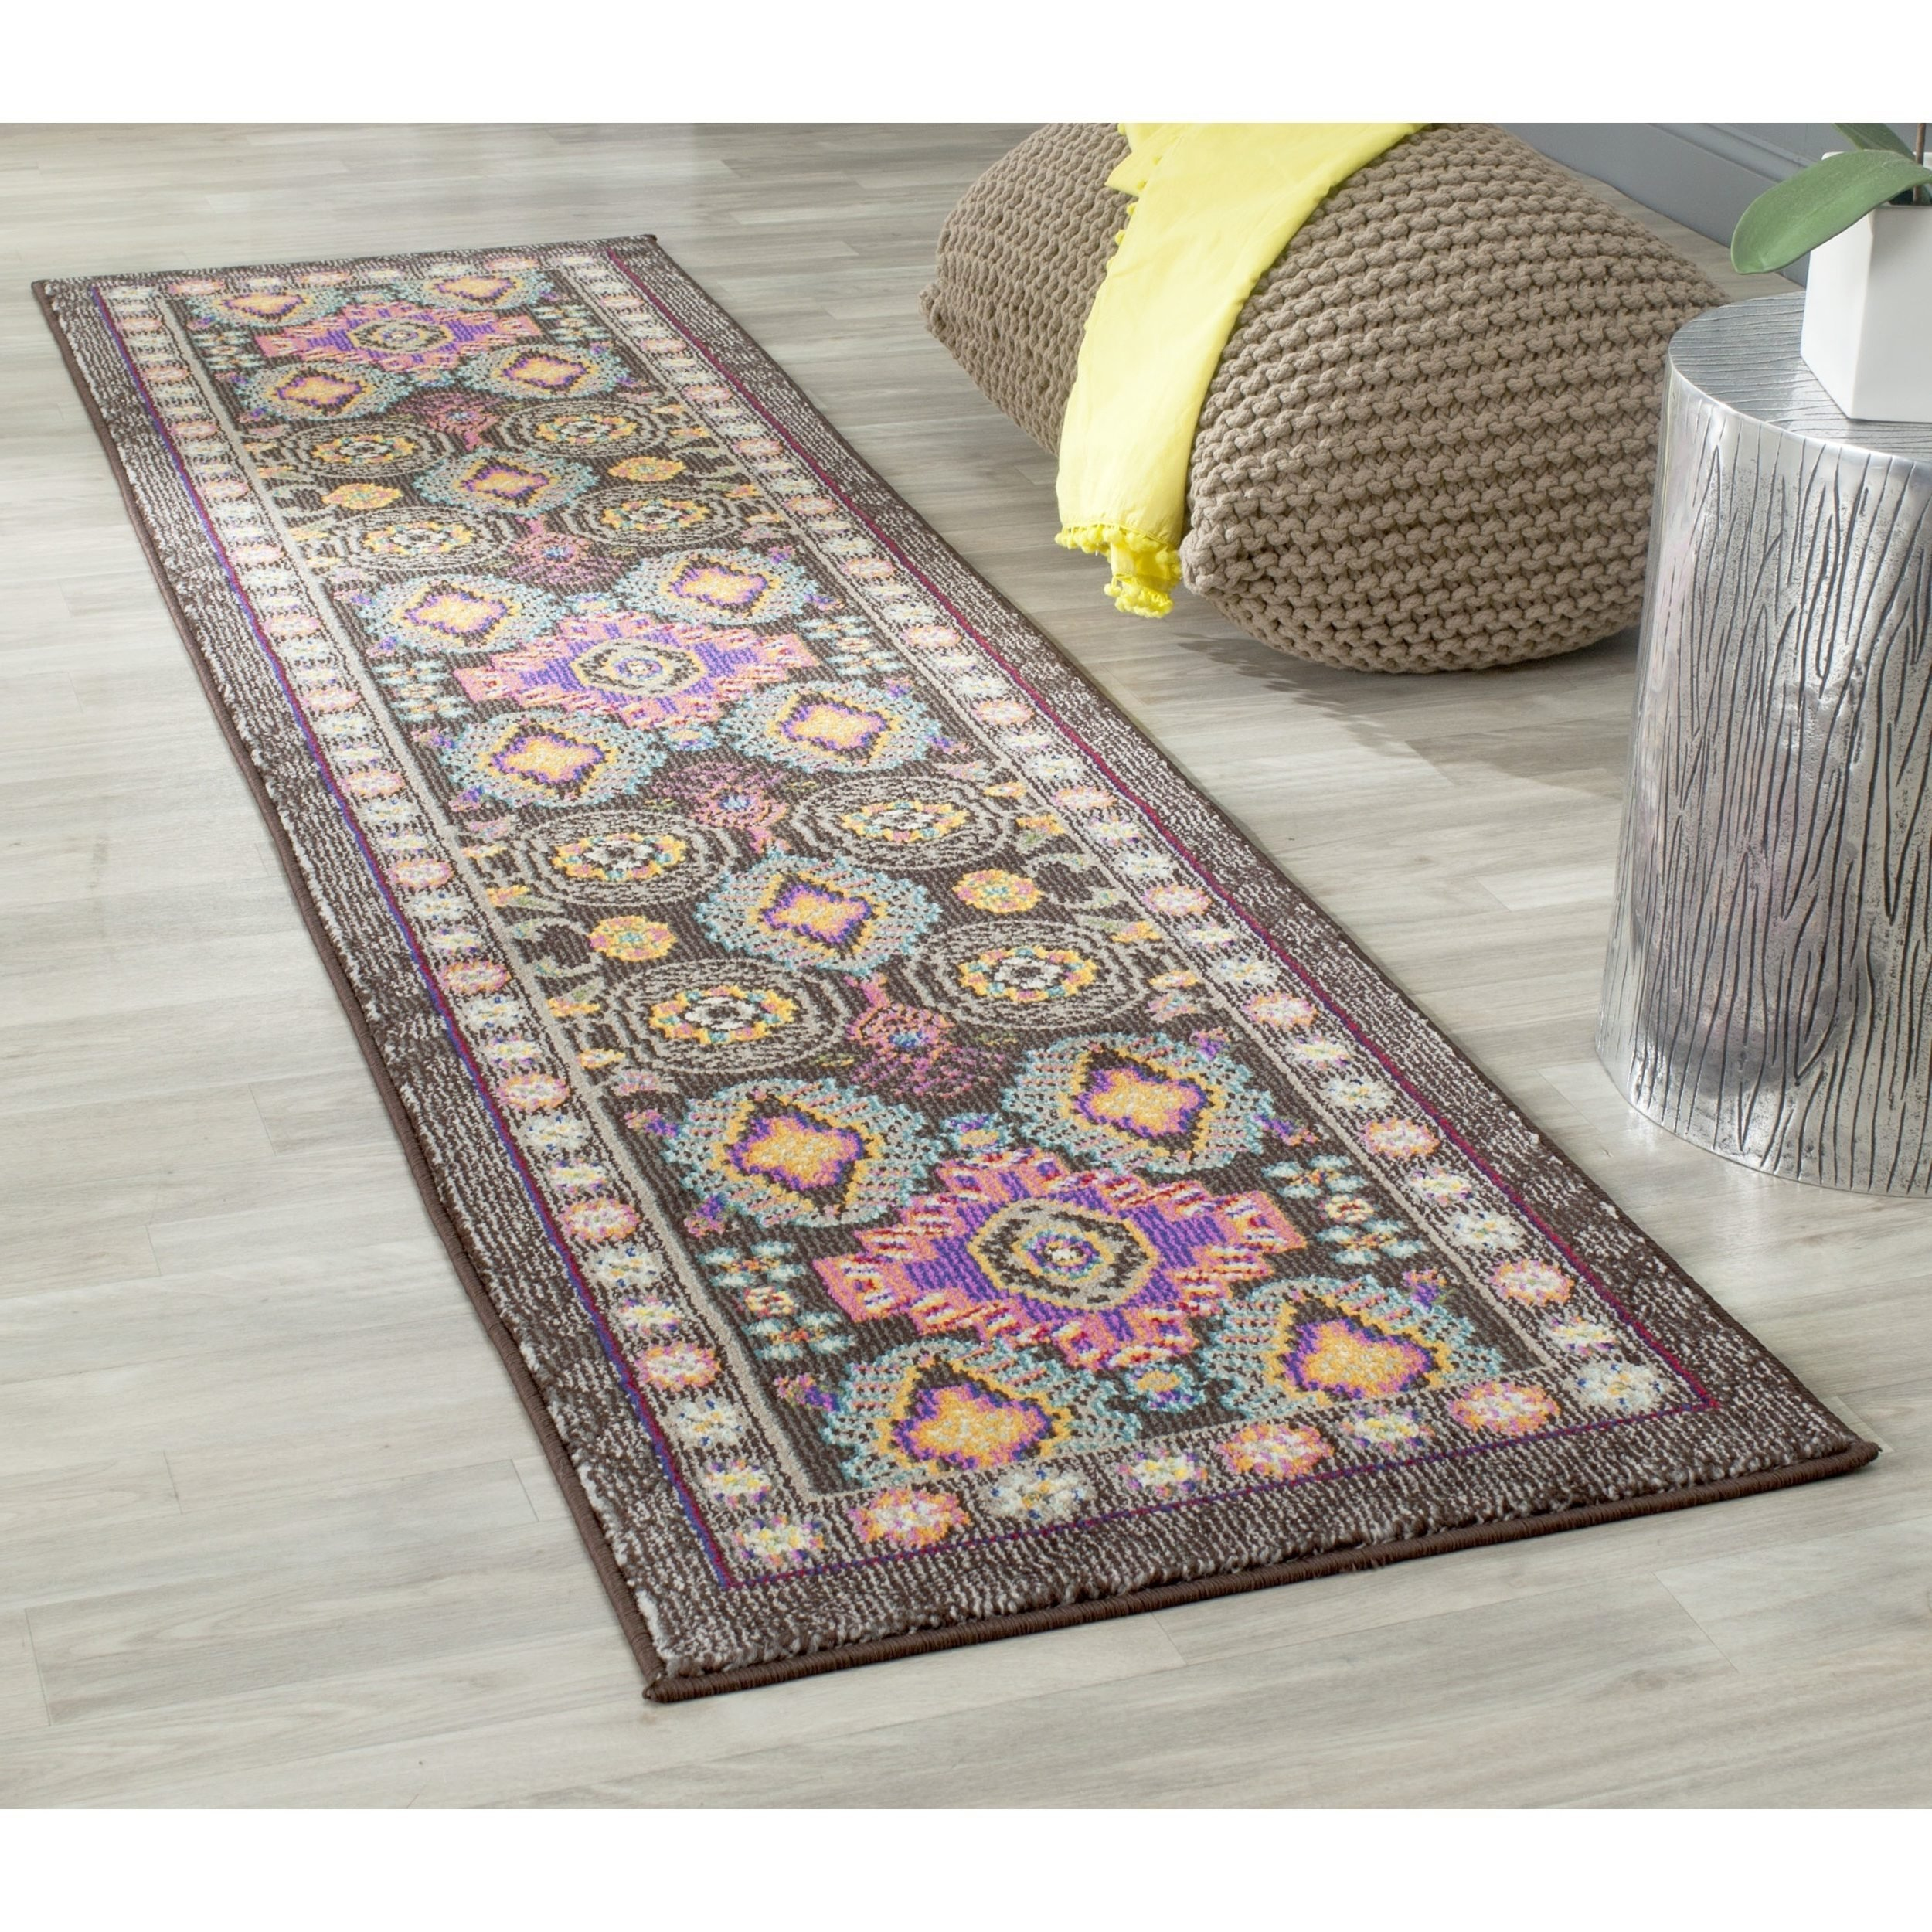 D&H 1 Piece 2'2 x 6ft Vibrant Colorful Bohemian Hallway Rug, Brown Pink Purple Teal Bordered Hippie Themed Long Carpet, Jeweled Colors Rainbow Themed Morrocan Multi Colored, Indoor Polyproplene